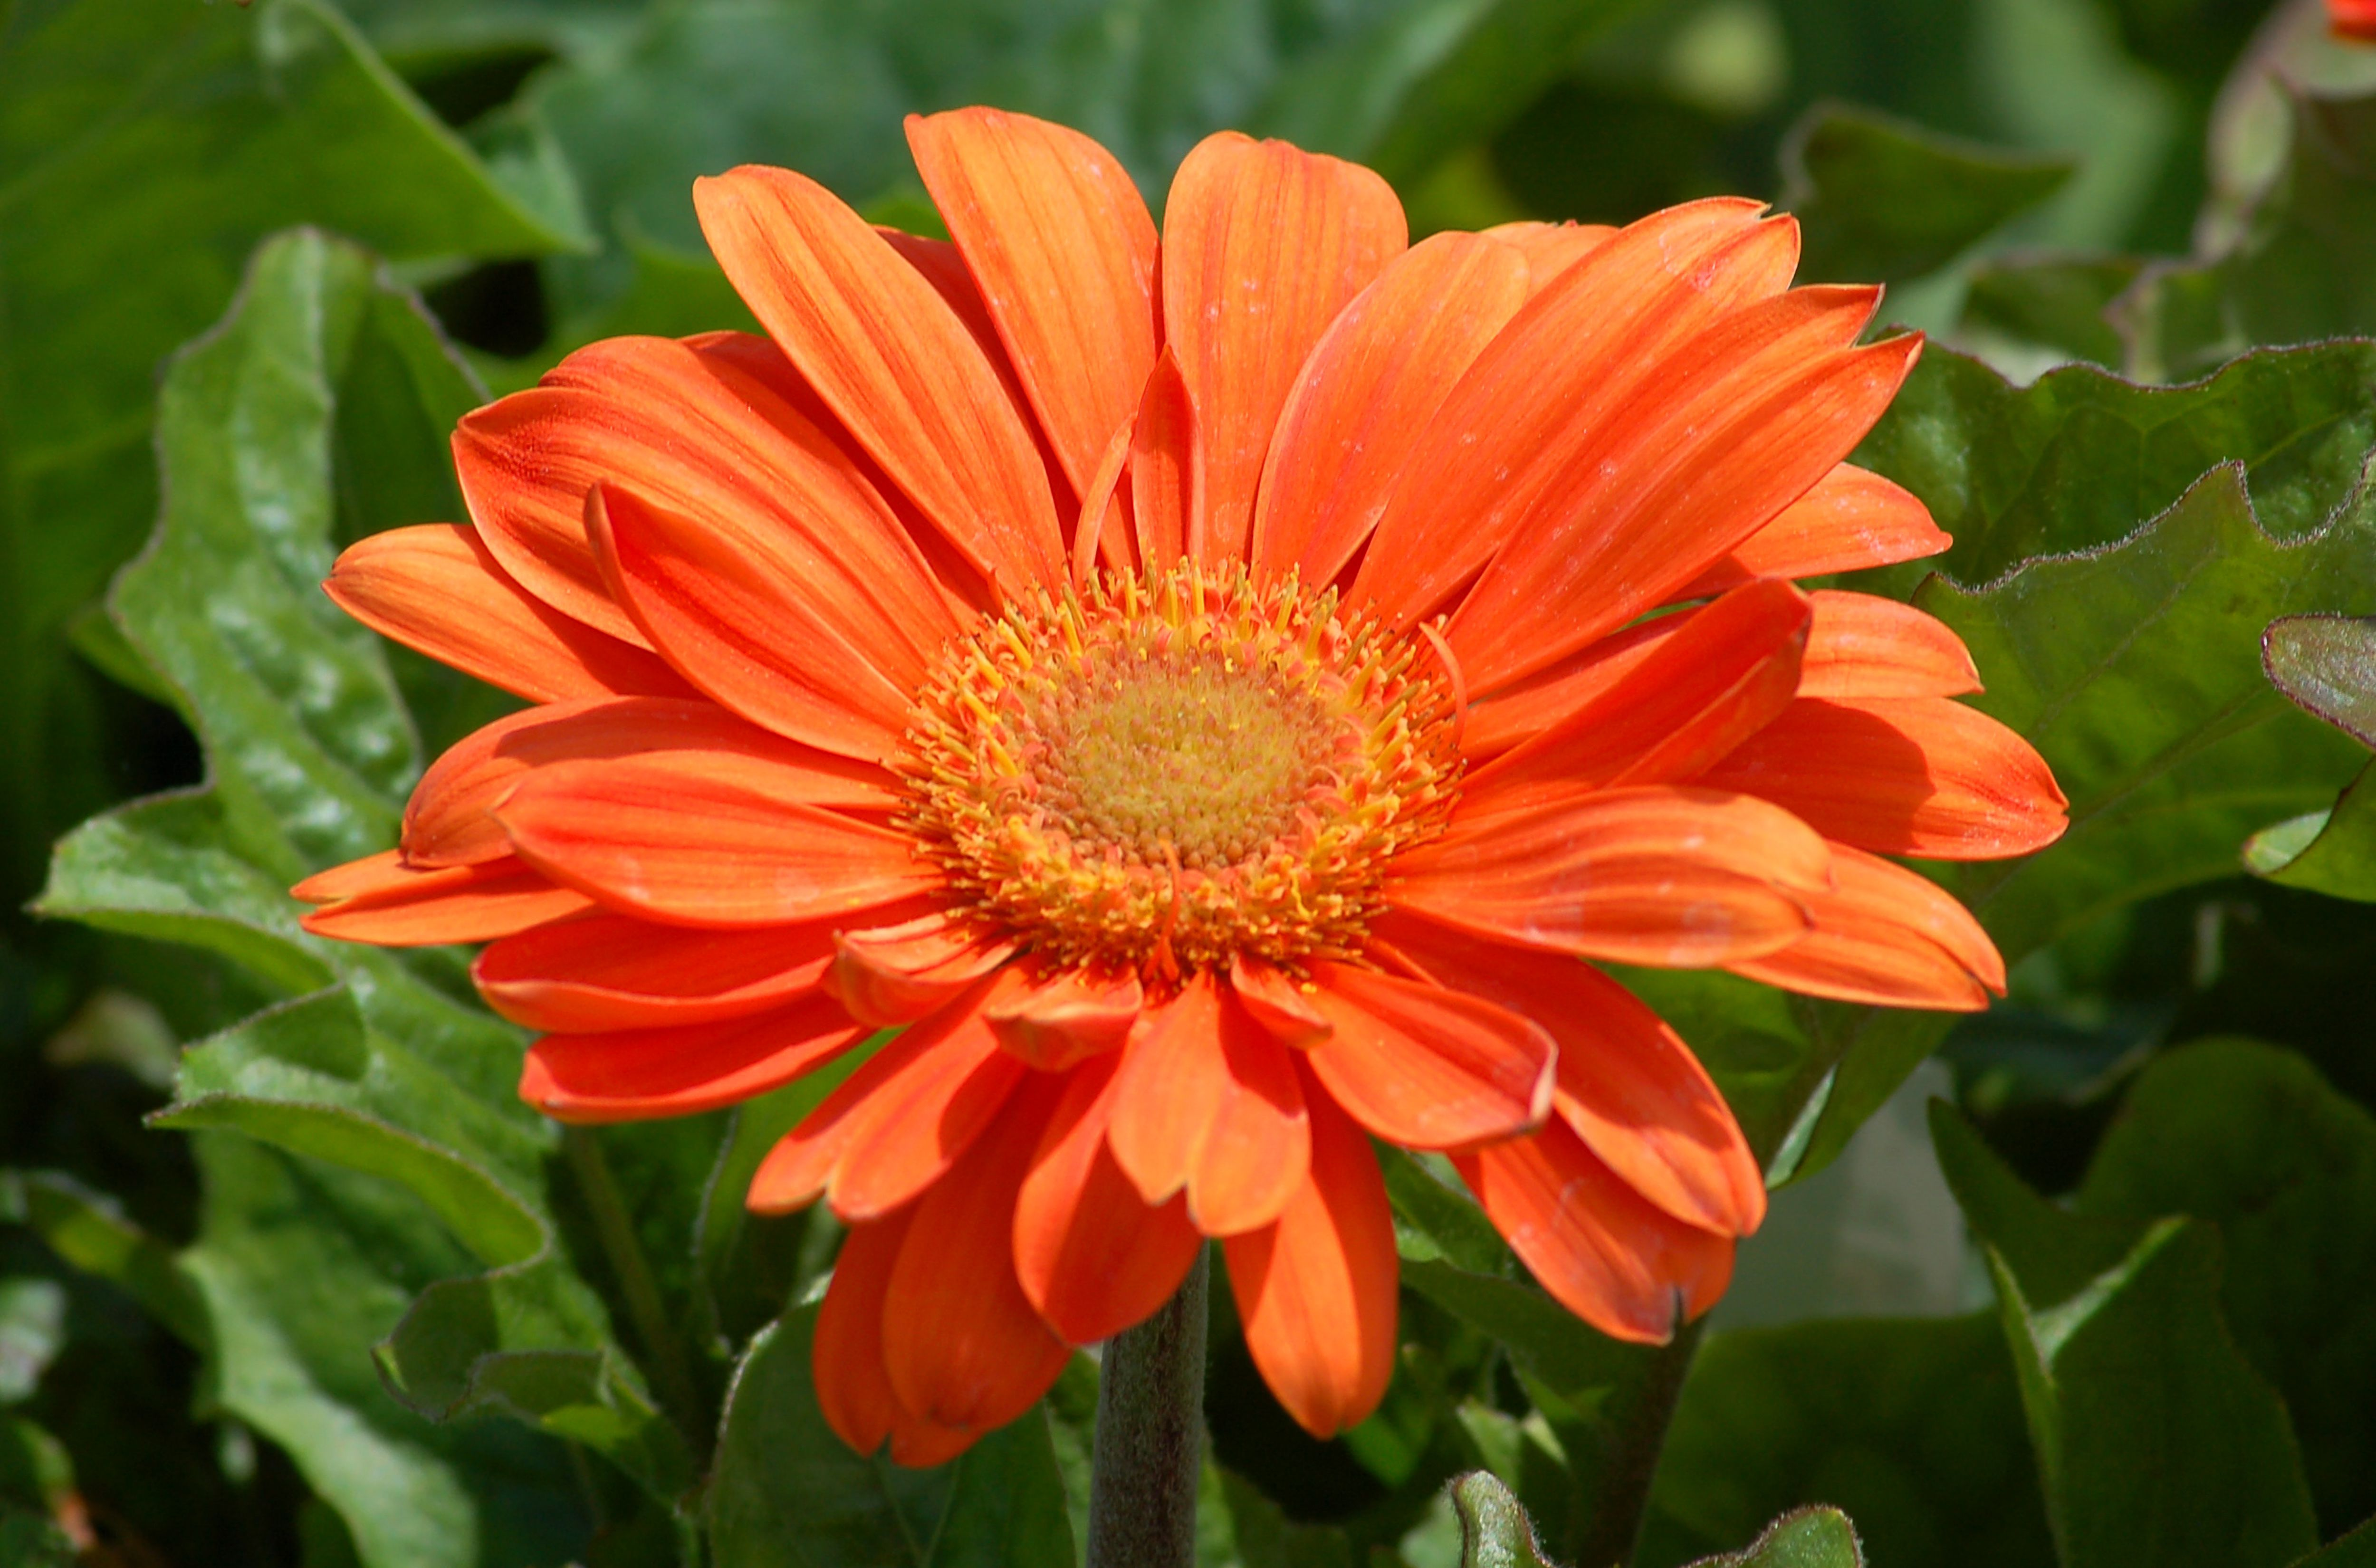 Gerbera daisy flowers tender perennial in many colors izmirmasajfo